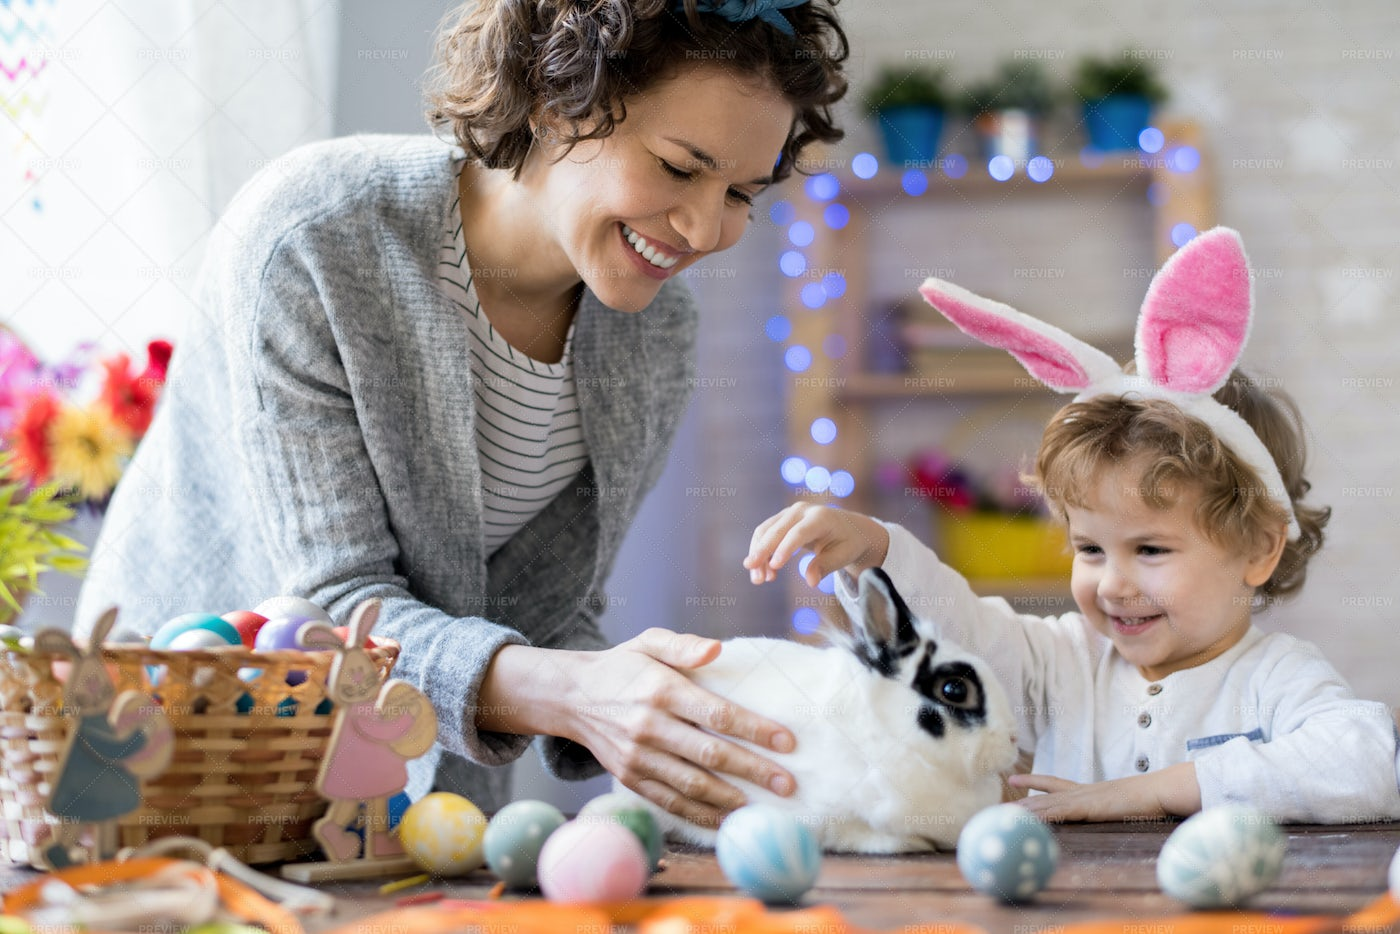 Happy Family On Easter: Stock Photos